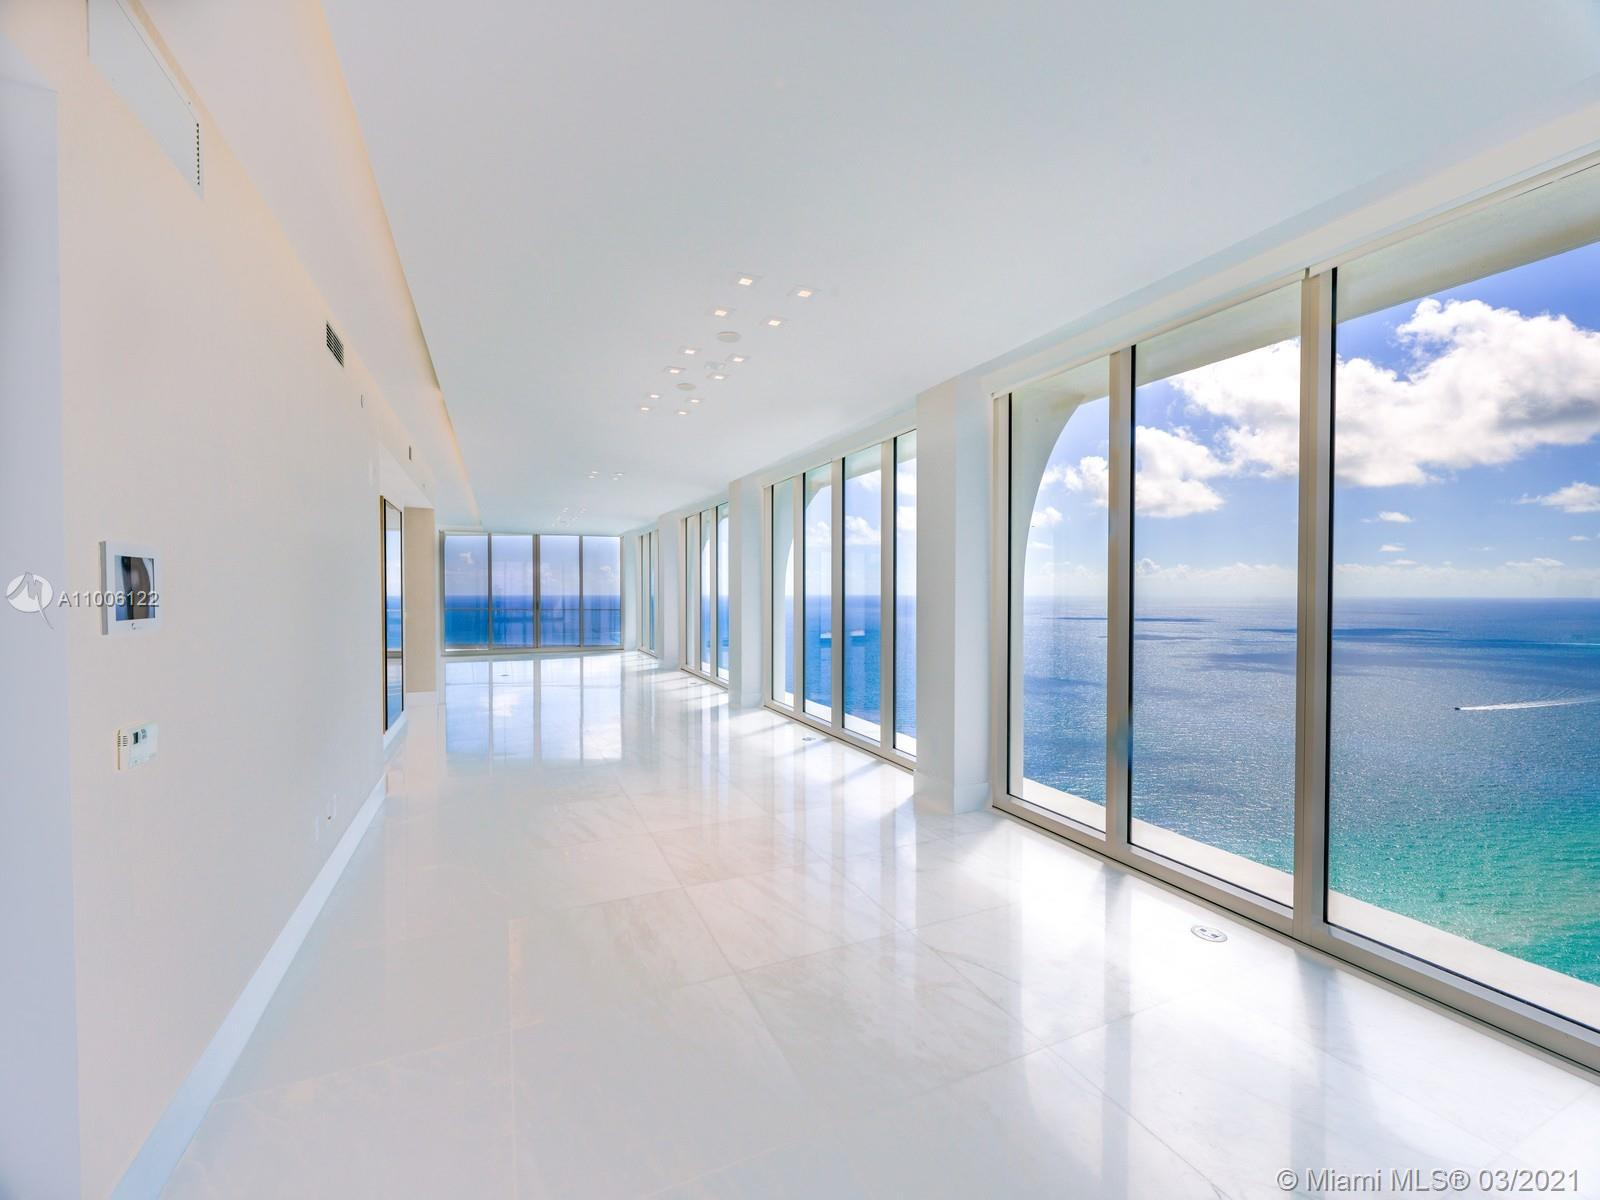 16901 Collins Ave, Unit #4901 Luxury Real Estate